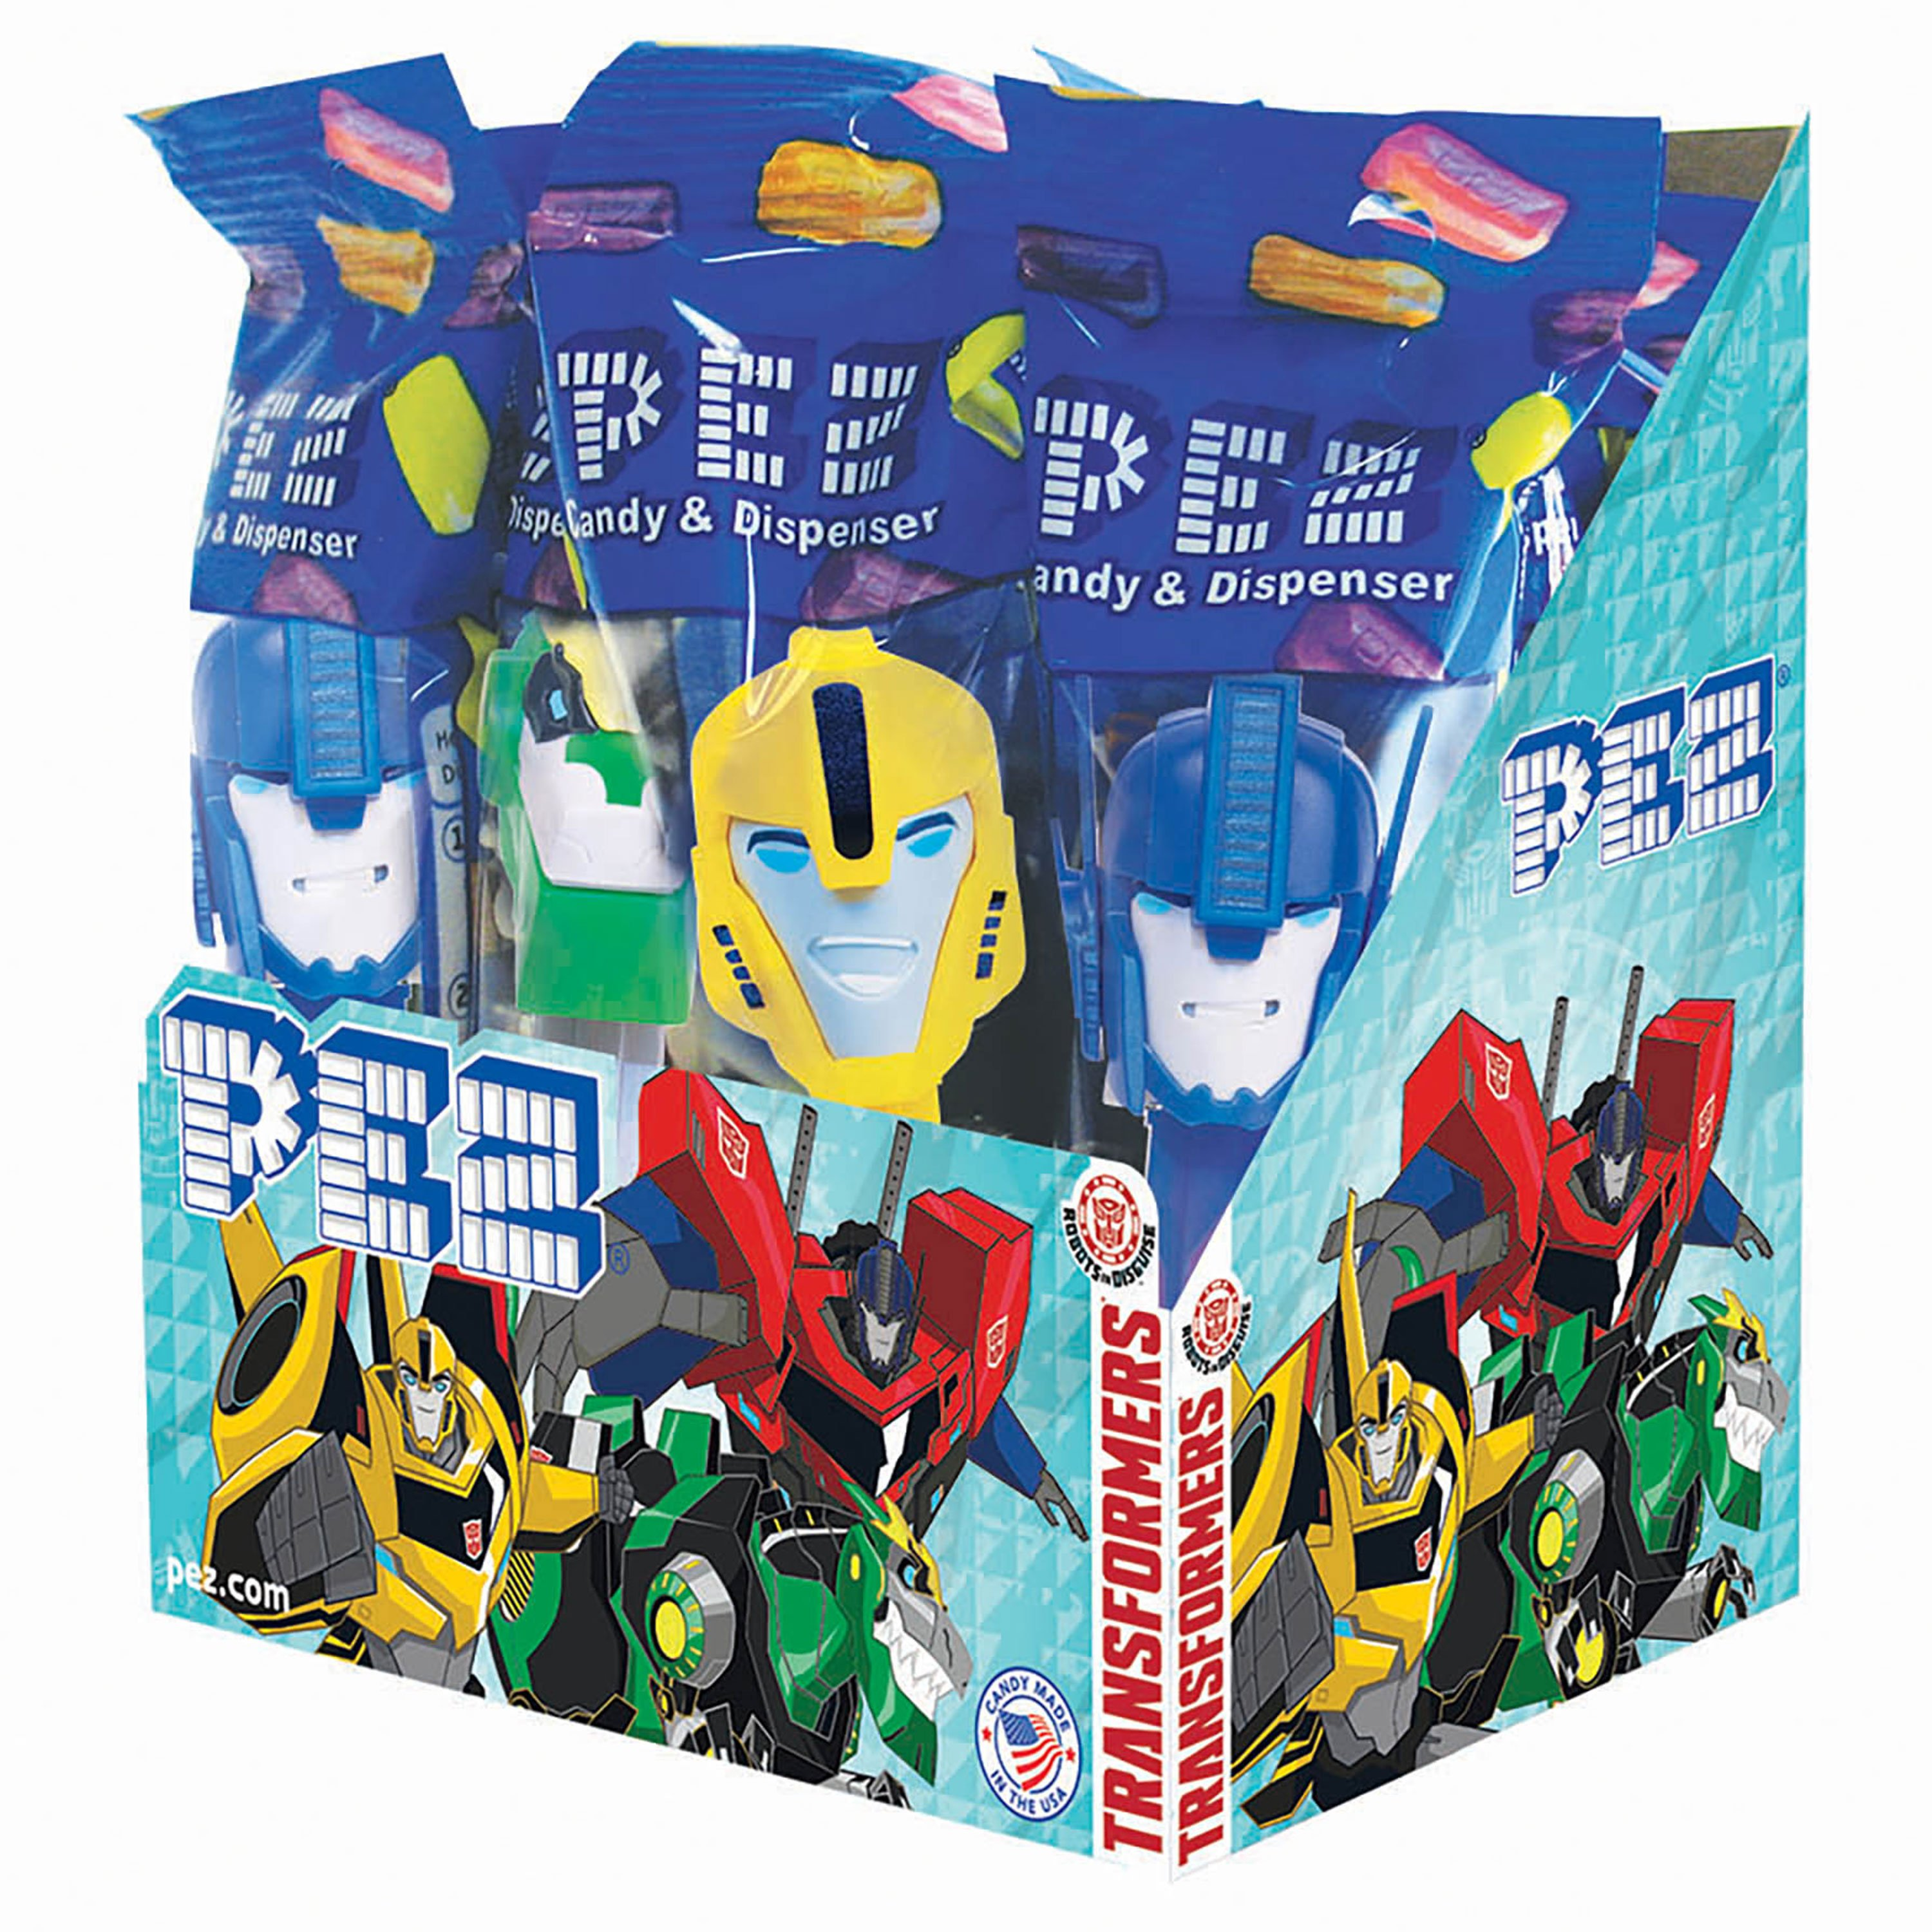 PEZ Candy Transformers Assortment (Robots in Disguise), candy dispenser plus 2 rolls of assorted fruit candy, box of 12